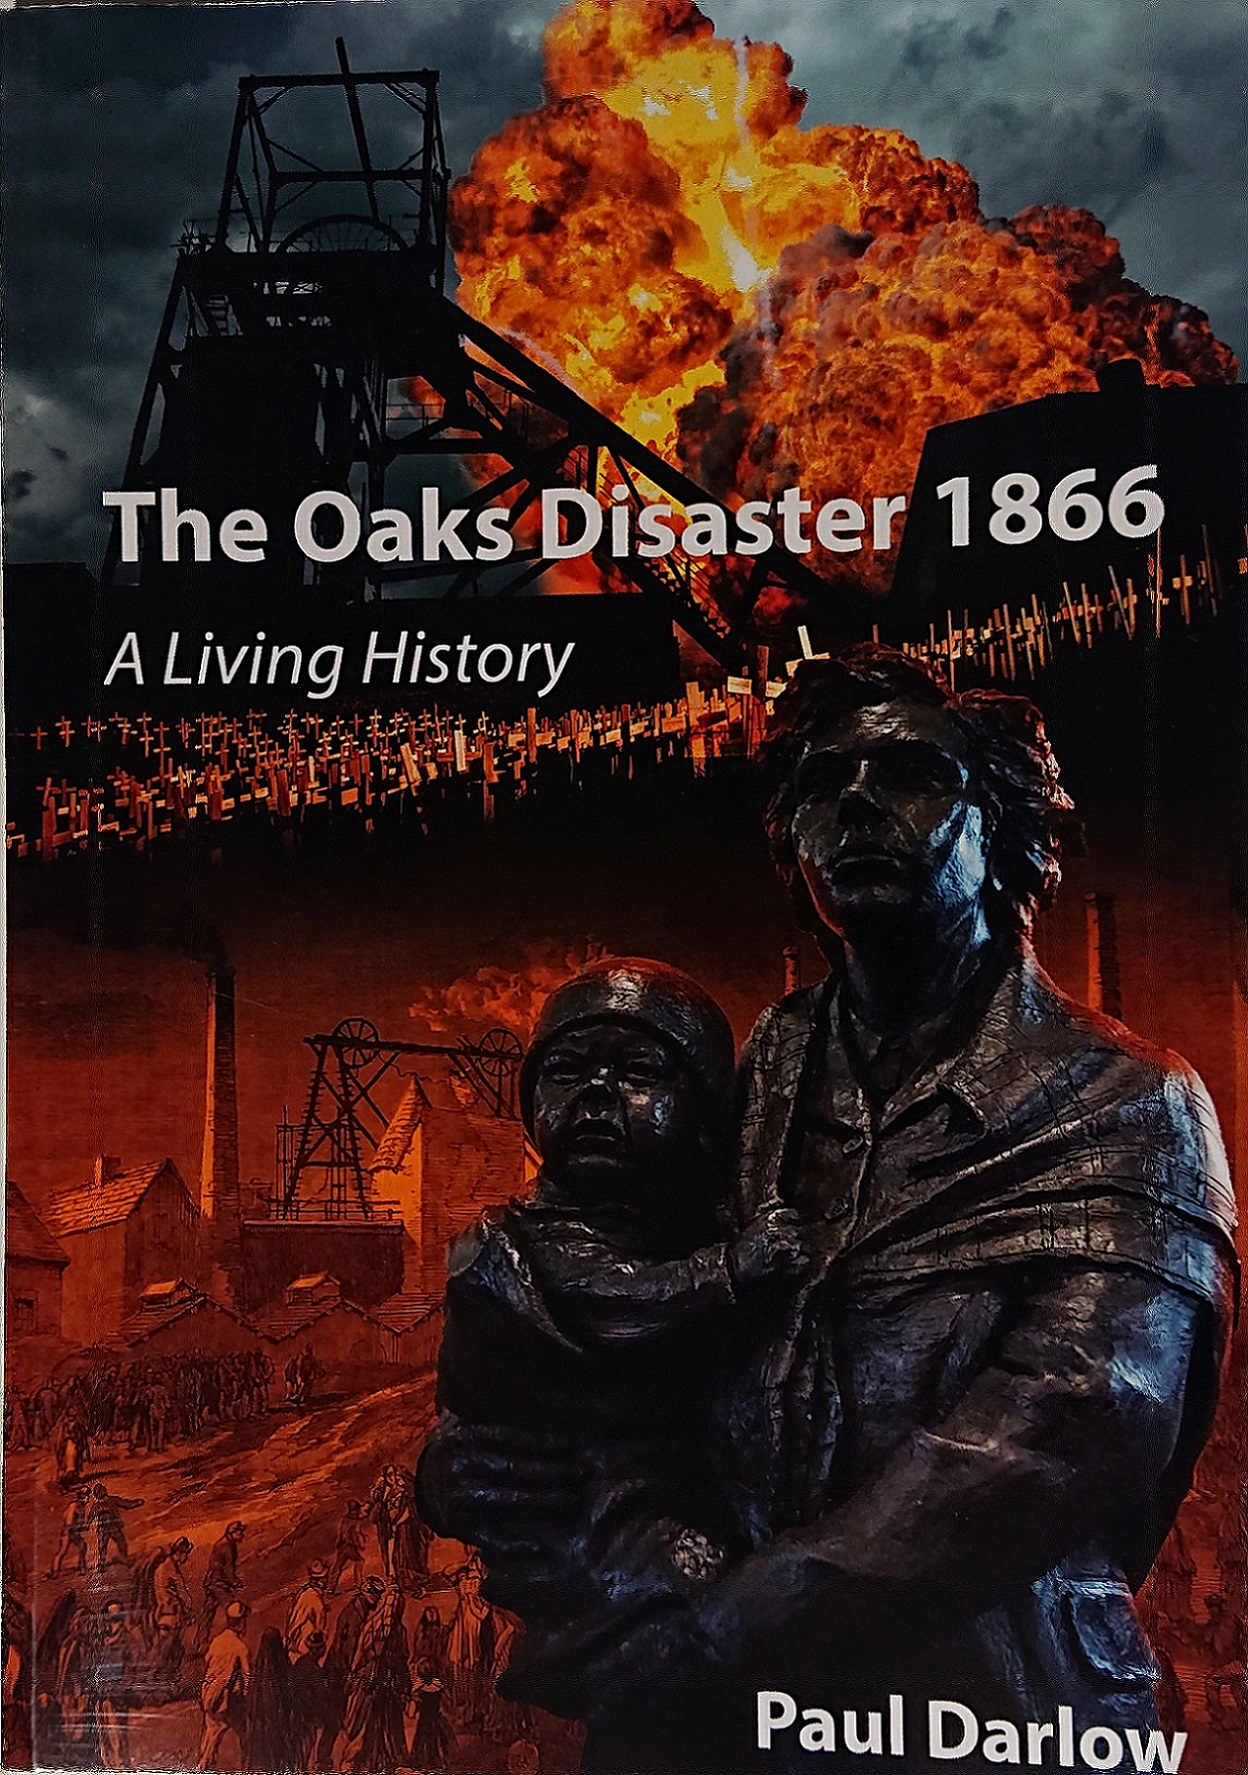 The Oaks Disaster 1866, A Living History